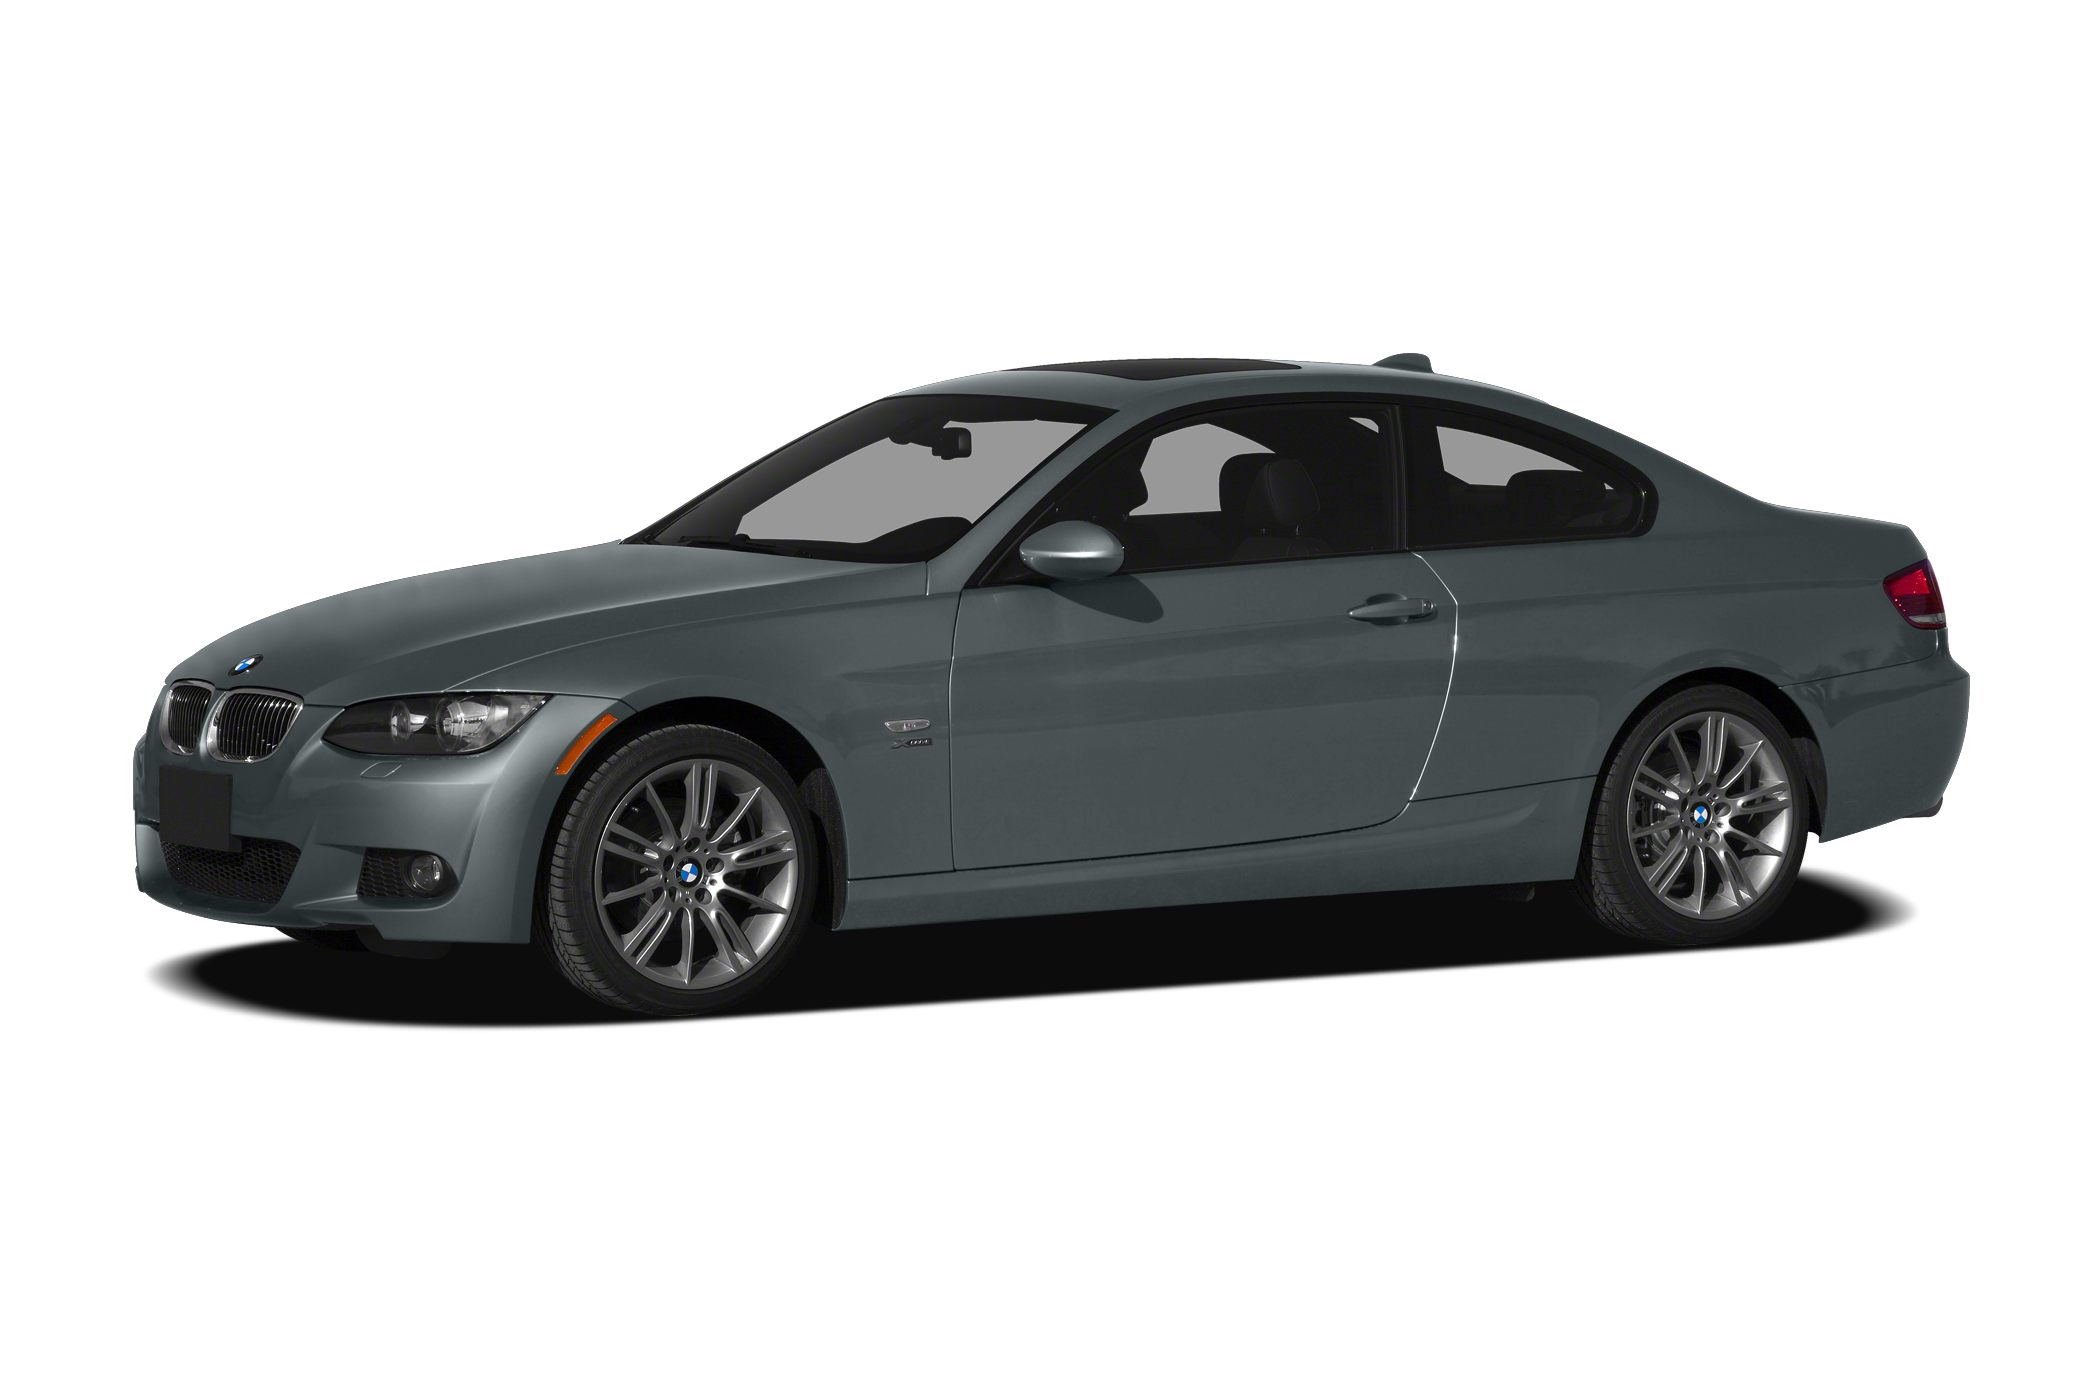 2010 BMW 328 I XDrive Sedan for sale in Mechanicsburg for $22,750 with 34,030 miles.